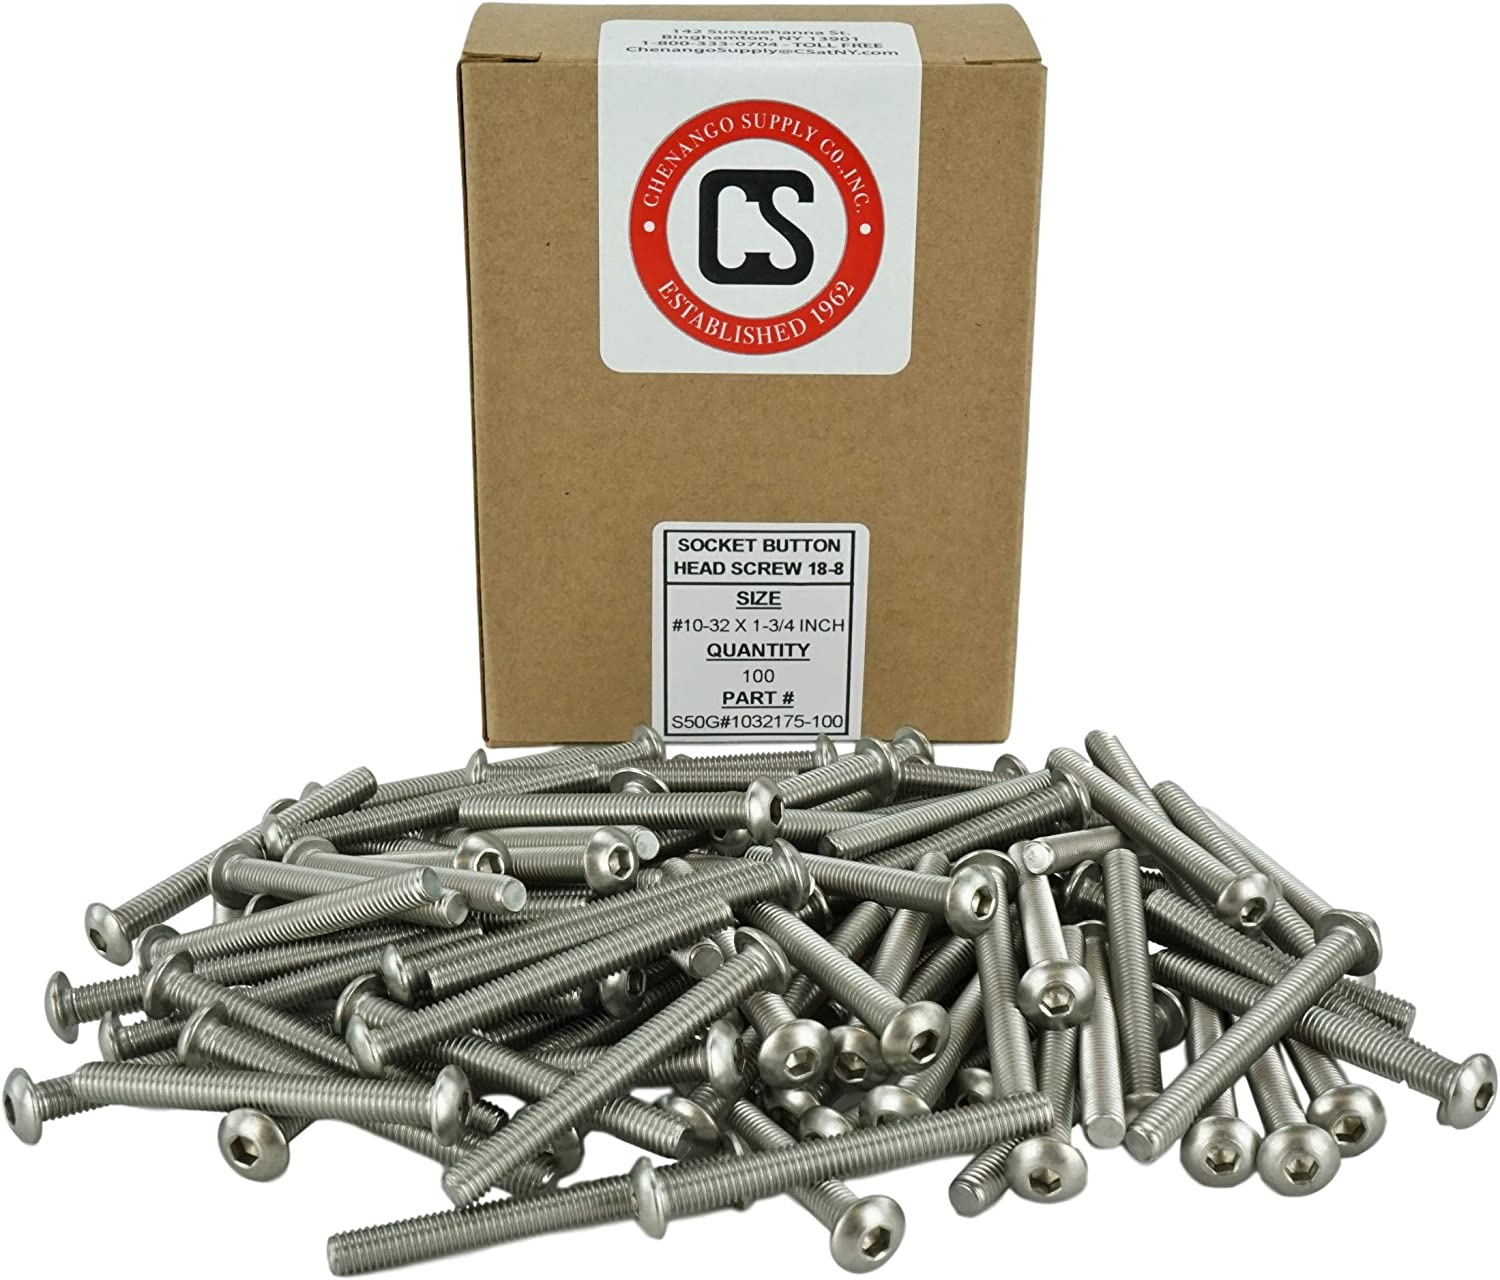 1//2 to 2 Available Stainless Steel 18-8 Socket Button Head Cap Screws Full Thread Machine Thread Stainless #10-32 x 1 10-32 x 1 Hex Drive